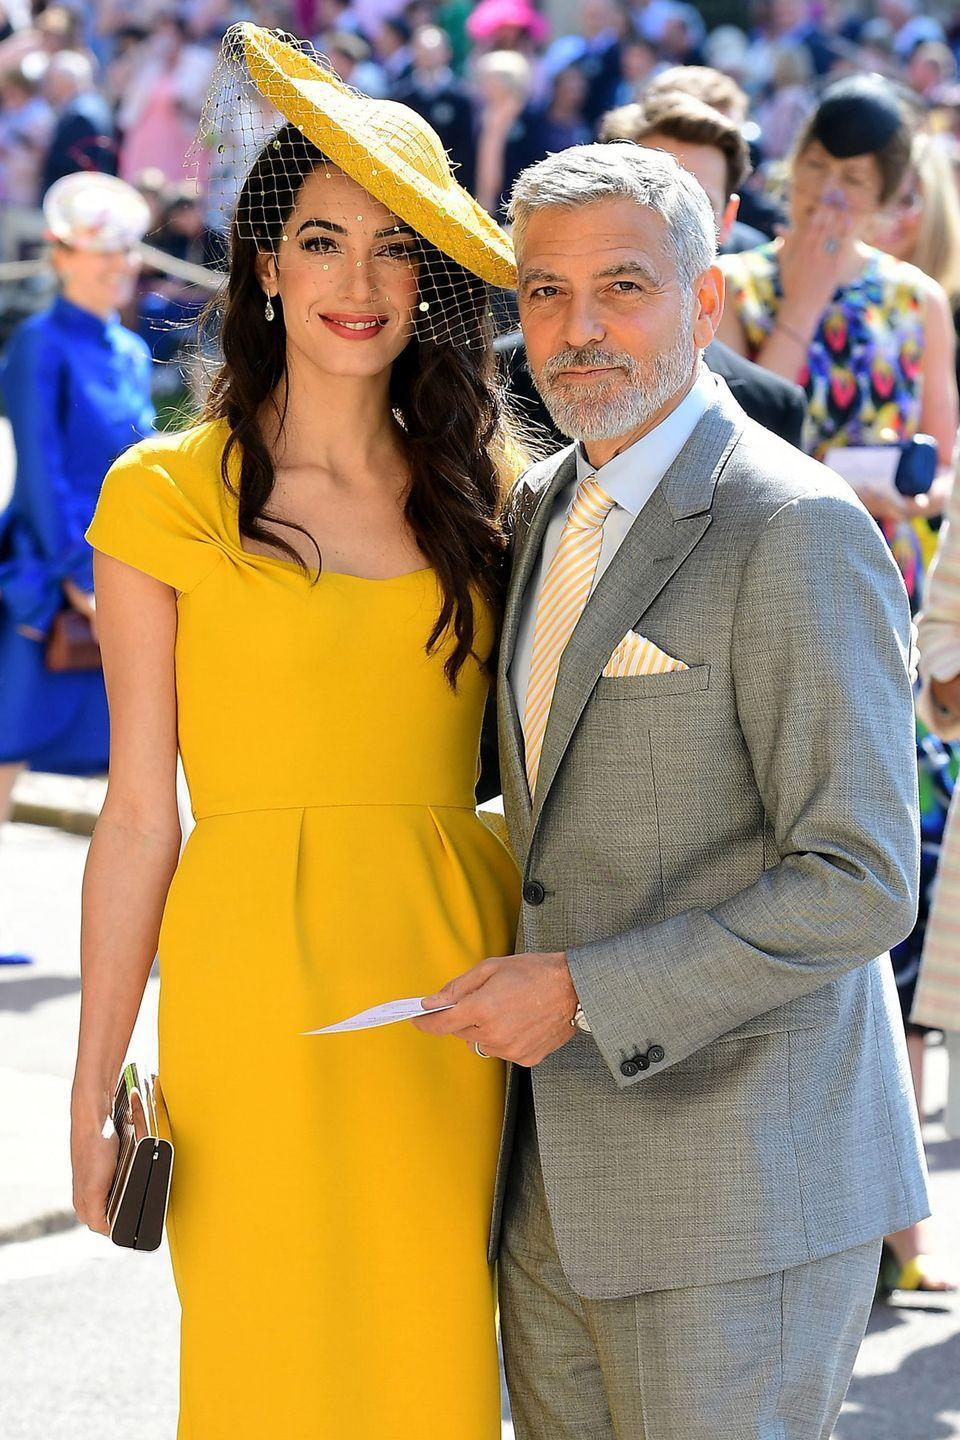 "<p>George and Amal Clooney first met at the actor's Lake Como home in July of 2013 according to <em><a href=""https://people.com/movies/the-romantic-untold-story-of-the-day-george-and-amal-clooney-first-met/"" rel=""nofollow noopener"" target=""_blank"" data-ylk=""slk:People"" class=""link rapid-noclick-resp"">People</a></em>. Interestingly enough, George's parents were in town that day, and they met their future daughter-in-law before the two even went out on a first date. The two were <a href=""https://www.harpersbazaar.com/wedding/photos/news/g4229/george-clooney-amal-alamuddin-wedding/"" rel=""nofollow noopener"" target=""_blank"" data-ylk=""slk:soon married"" class=""link rapid-noclick-resp"">soon married</a> in September 2014 with a stunning Venetian wedding. </p><p>Less than three years later, the couple <a href=""https://www.harpersbazaar.com/celebrity/latest/news/a20578/amal-clooney-pregnant-twins/"" rel=""nofollow noopener"" target=""_blank"" data-ylk=""slk:announced"" class=""link rapid-noclick-resp"">announced</a> that Amal was expecting twins, and she <a href=""https://www.harpersbazaar.com/celebrity/latest/a9956228/amal-clooney-gives-birth-twins/"" rel=""nofollow noopener"" target=""_blank"" data-ylk=""slk:gave birth"" class=""link rapid-noclick-resp"">gave birth</a> to daughter Ella and son Alexander in June 2017. </p><p>George gushed over Amal becoming a mother in 2018: ""She is sort of this remarkable human being and now mother which is something, I suppose, you should assume she would be wonderful at as well,"" he said during an interview with David Letterman per <em><a href=""https://www.townandcountrymag.com/society/a16761104/george-clooney-amal-david-letterman-netflix/"" rel=""nofollow noopener"" target=""_blank"" data-ylk=""slk:Town & Country"" class=""link rapid-noclick-resp"">Town & Country</a></em>. ""But, when you see it in person, it makes you feel incredibly proud and also incredibly small.""</p>"